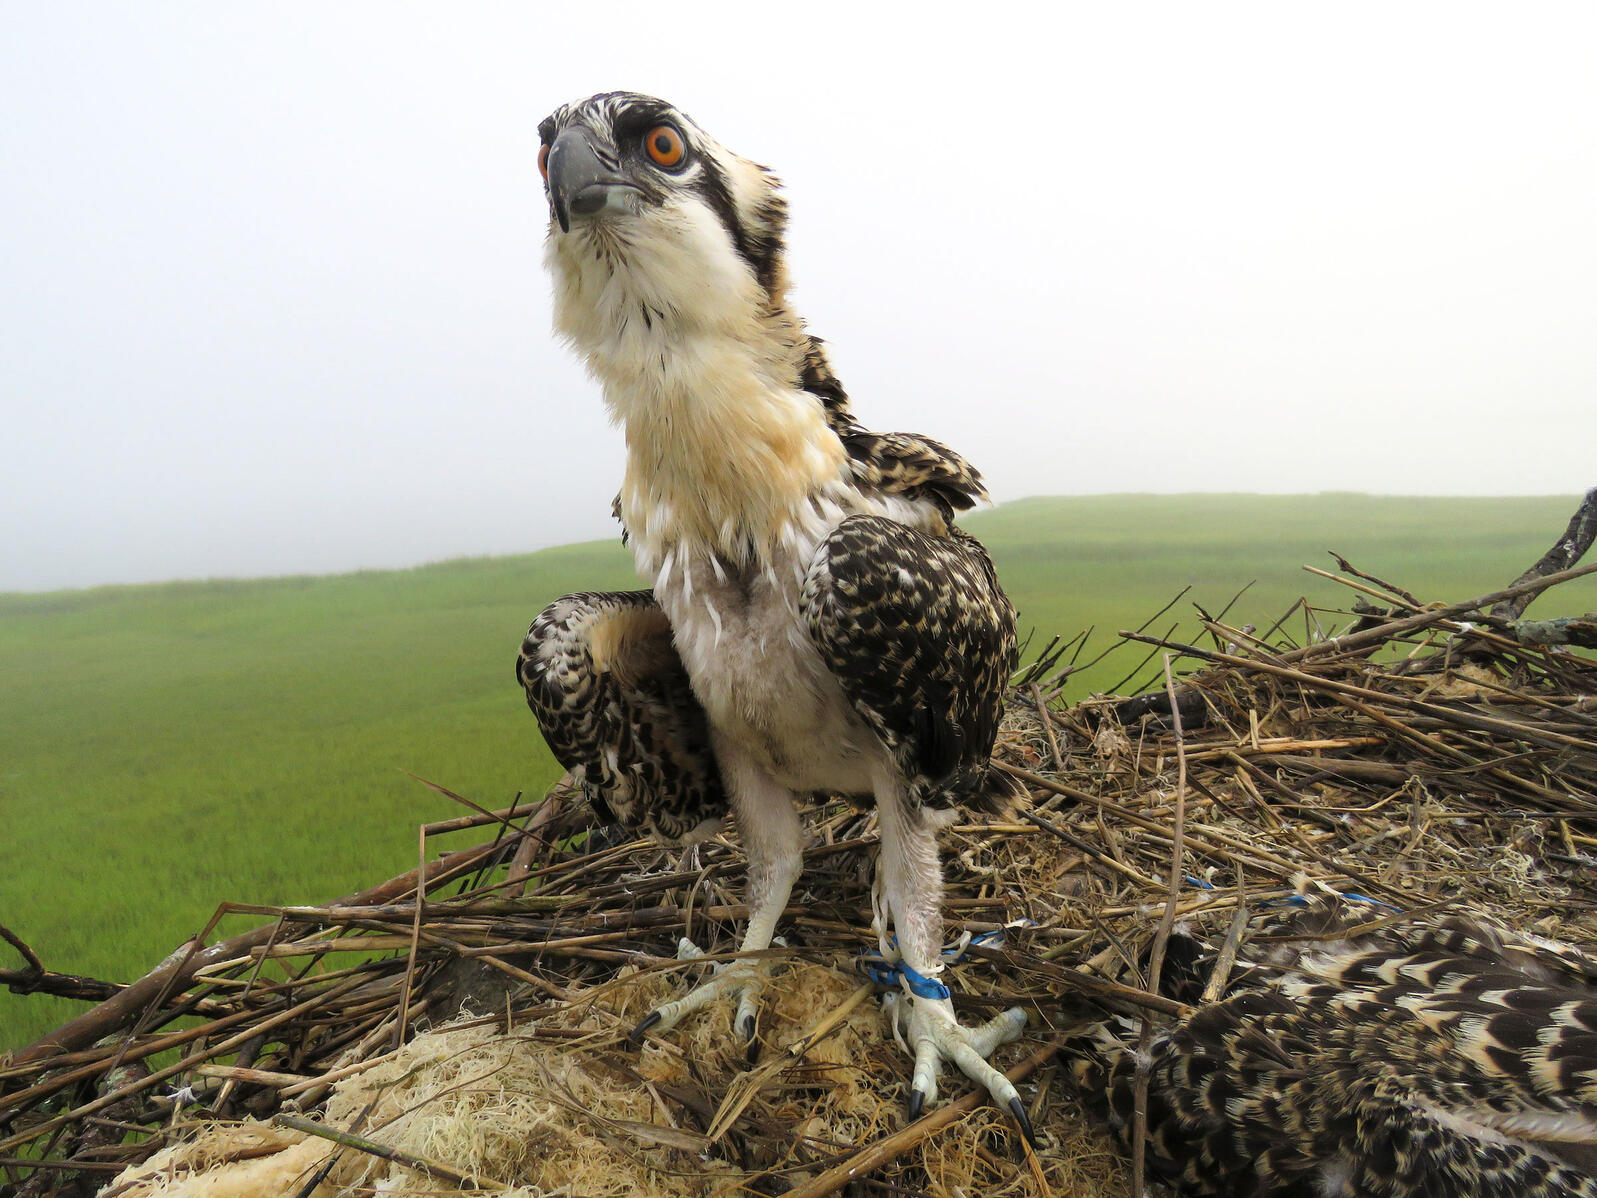 Ribbon from balloons, which can dangerously wrap around Osprey legs and wings, is one of the most common pieces of garbage Wurst finds in nests. Kathleen Clark